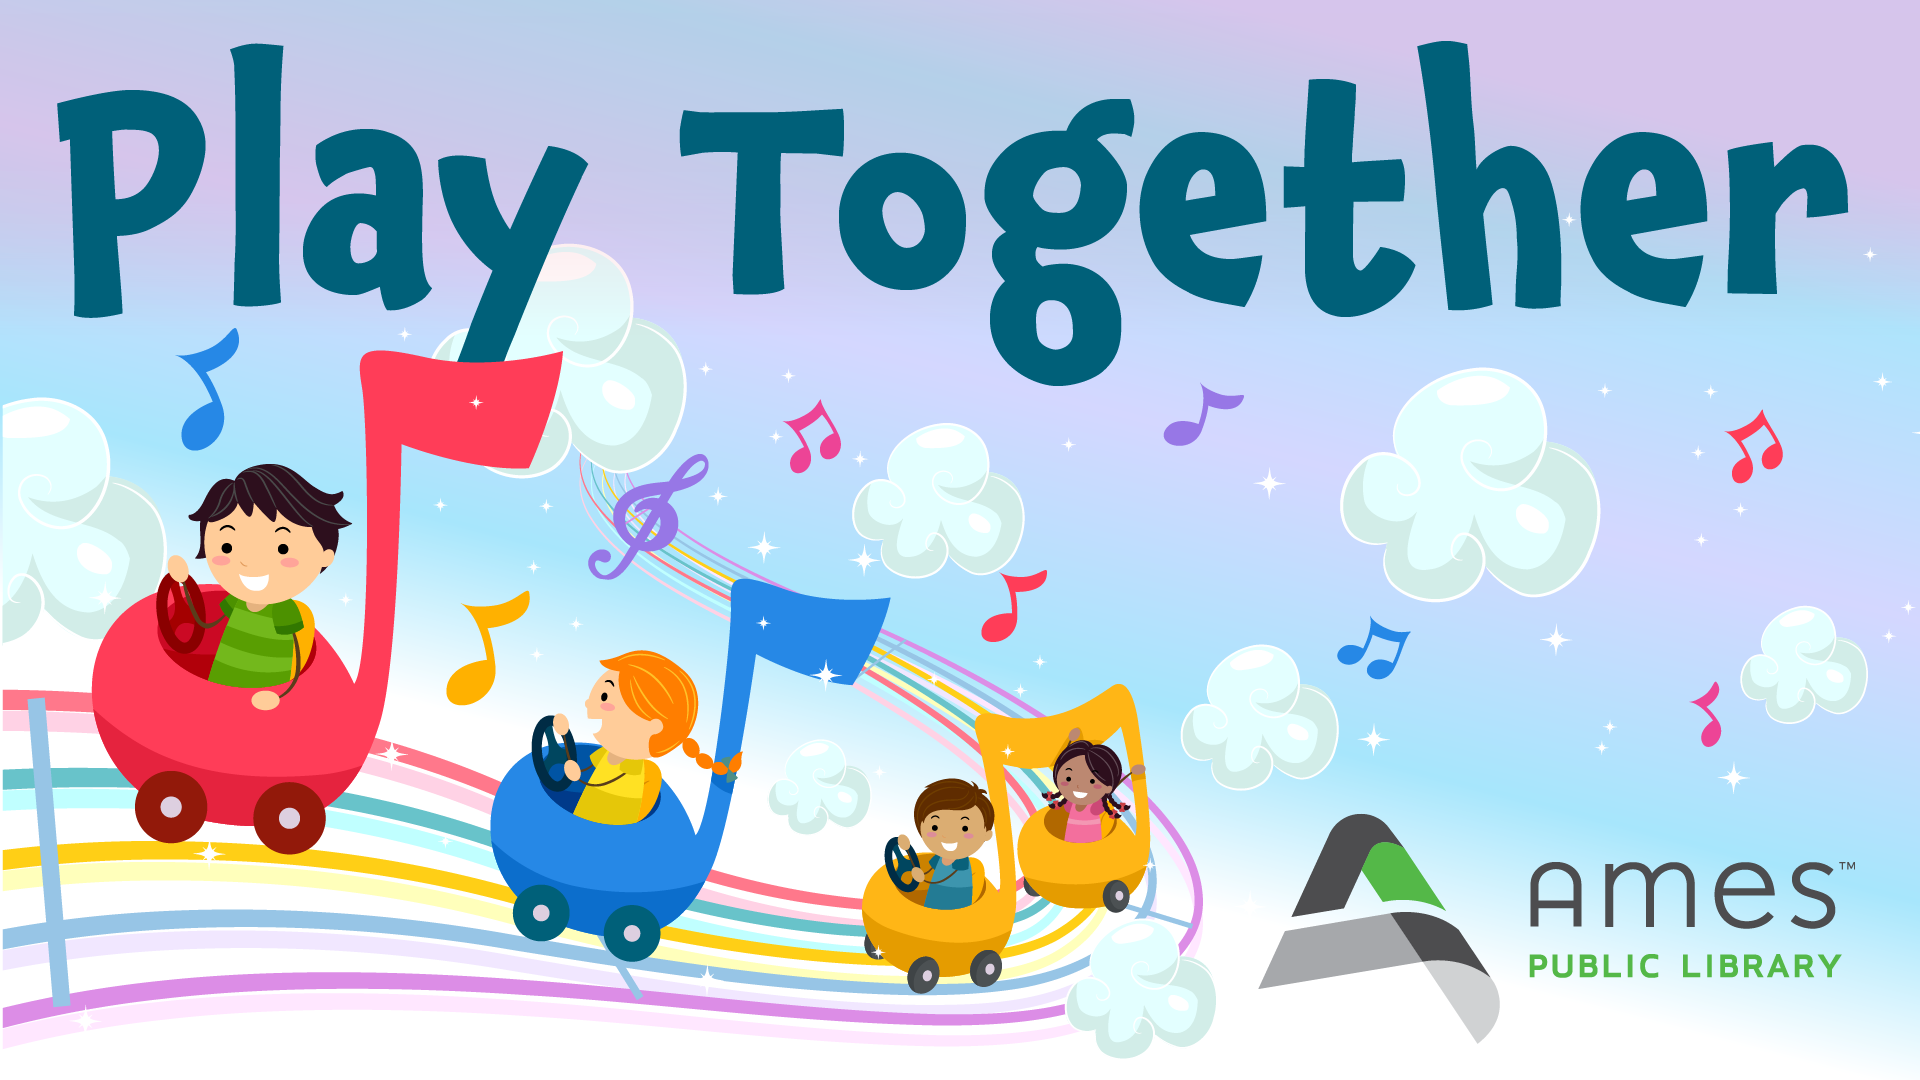 Play Together, Ames Public Library